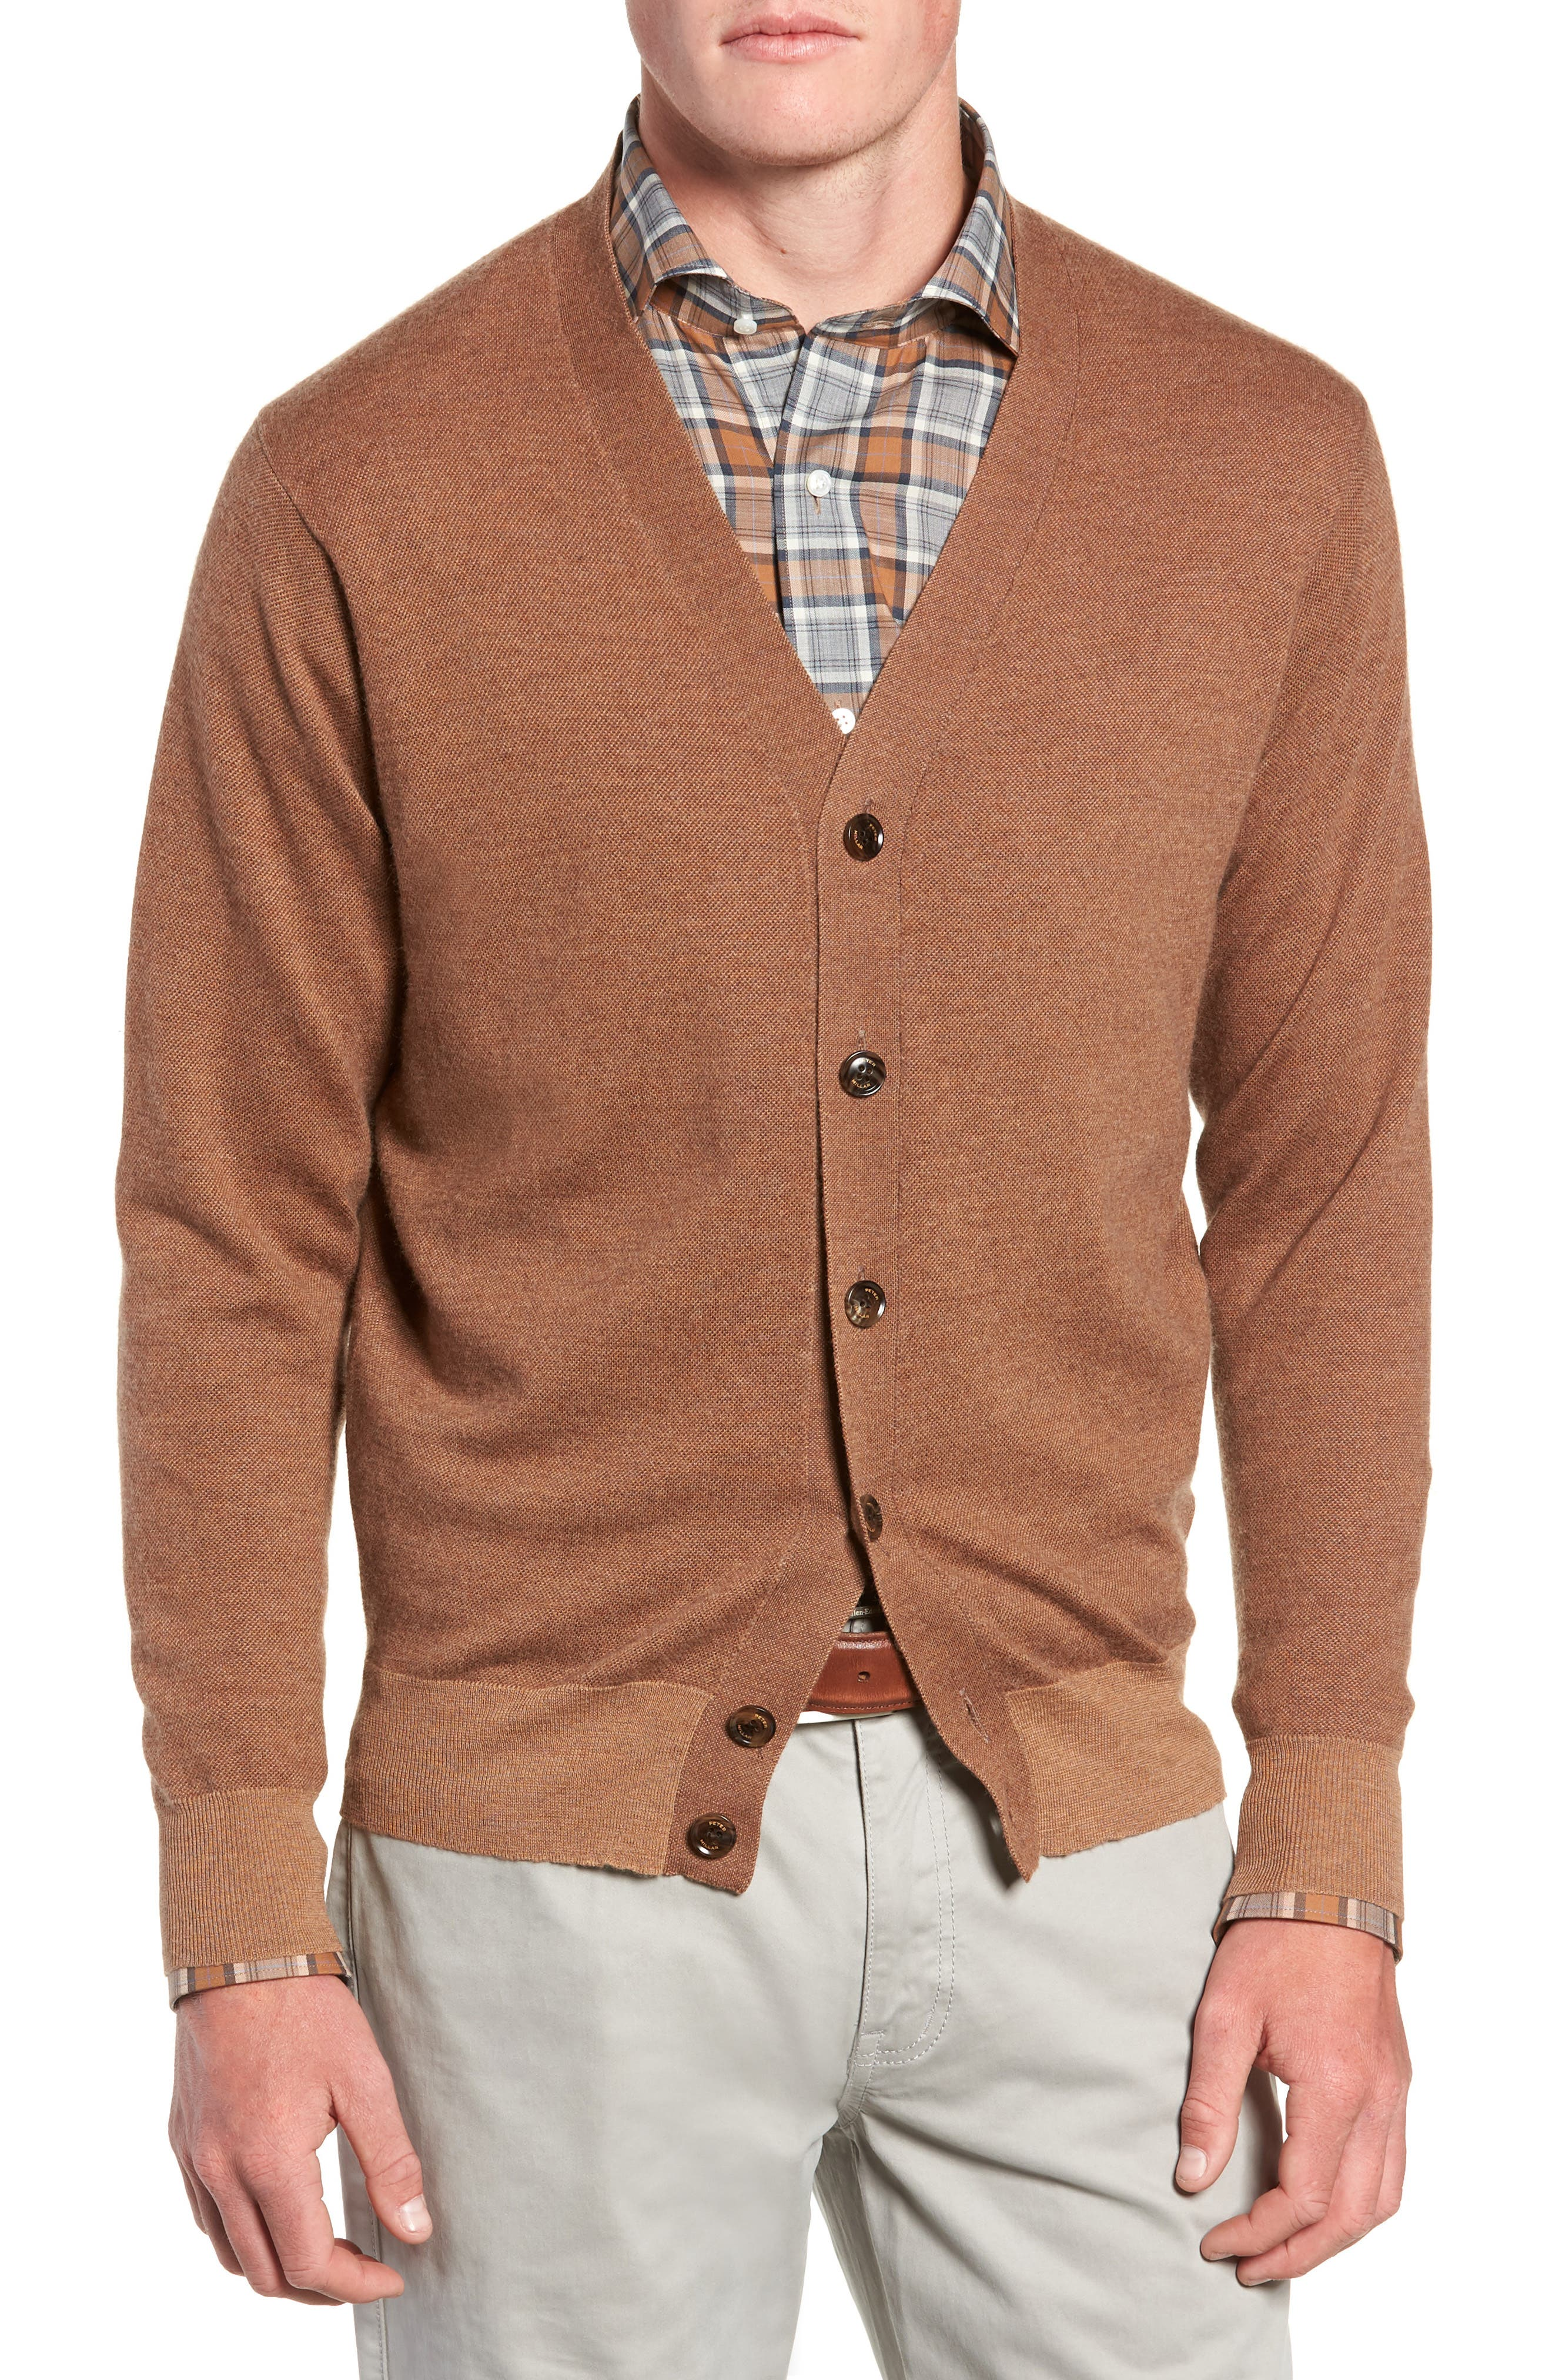 English Manor Cardigan,                             Alternate thumbnail 4, color,                             VICUNA